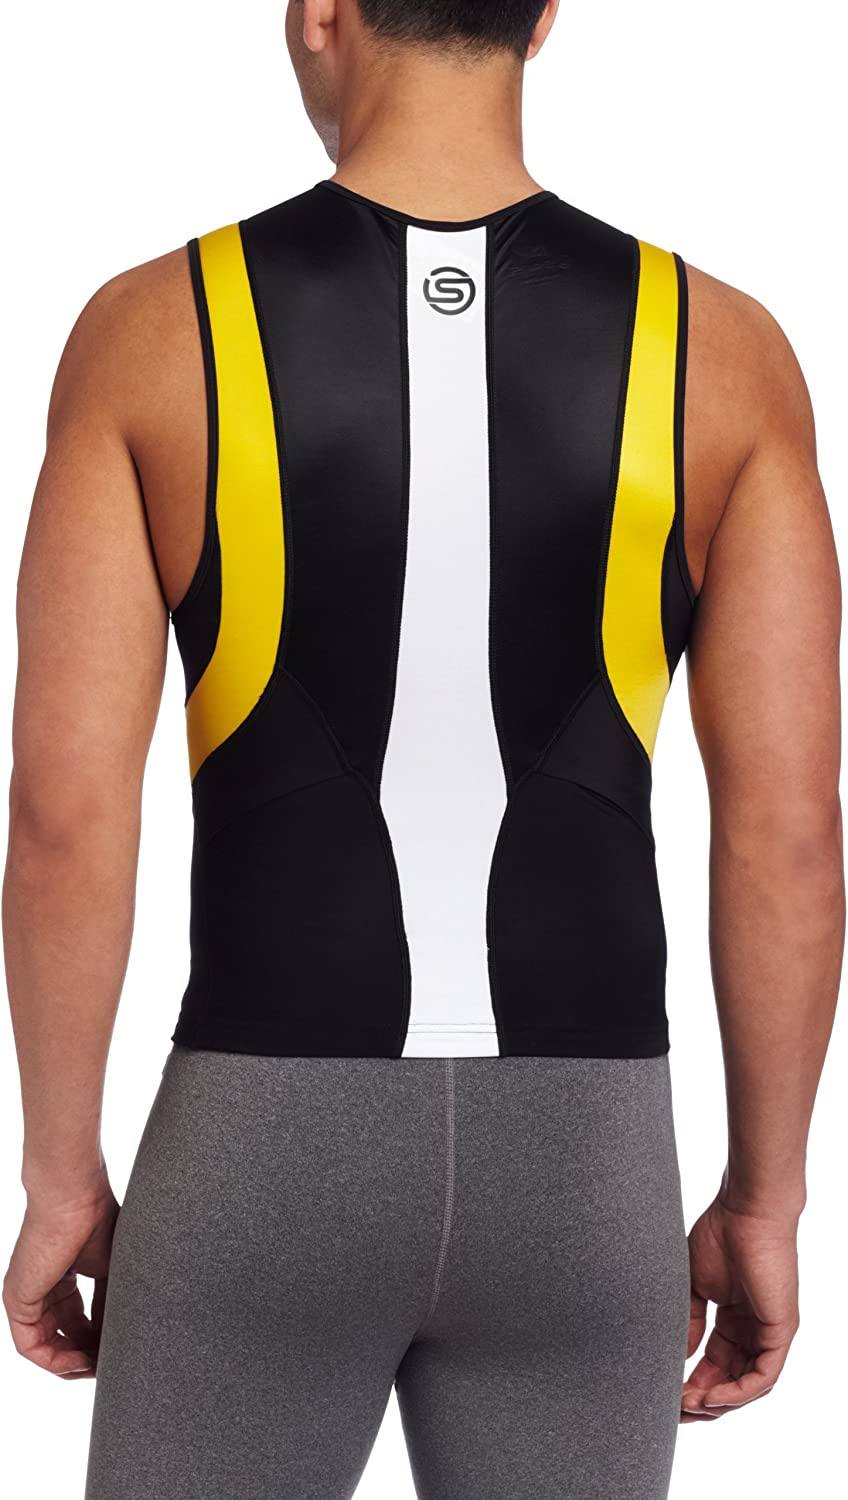 Skins Mens TRI400 Compression Sleeveless Front Zip Top